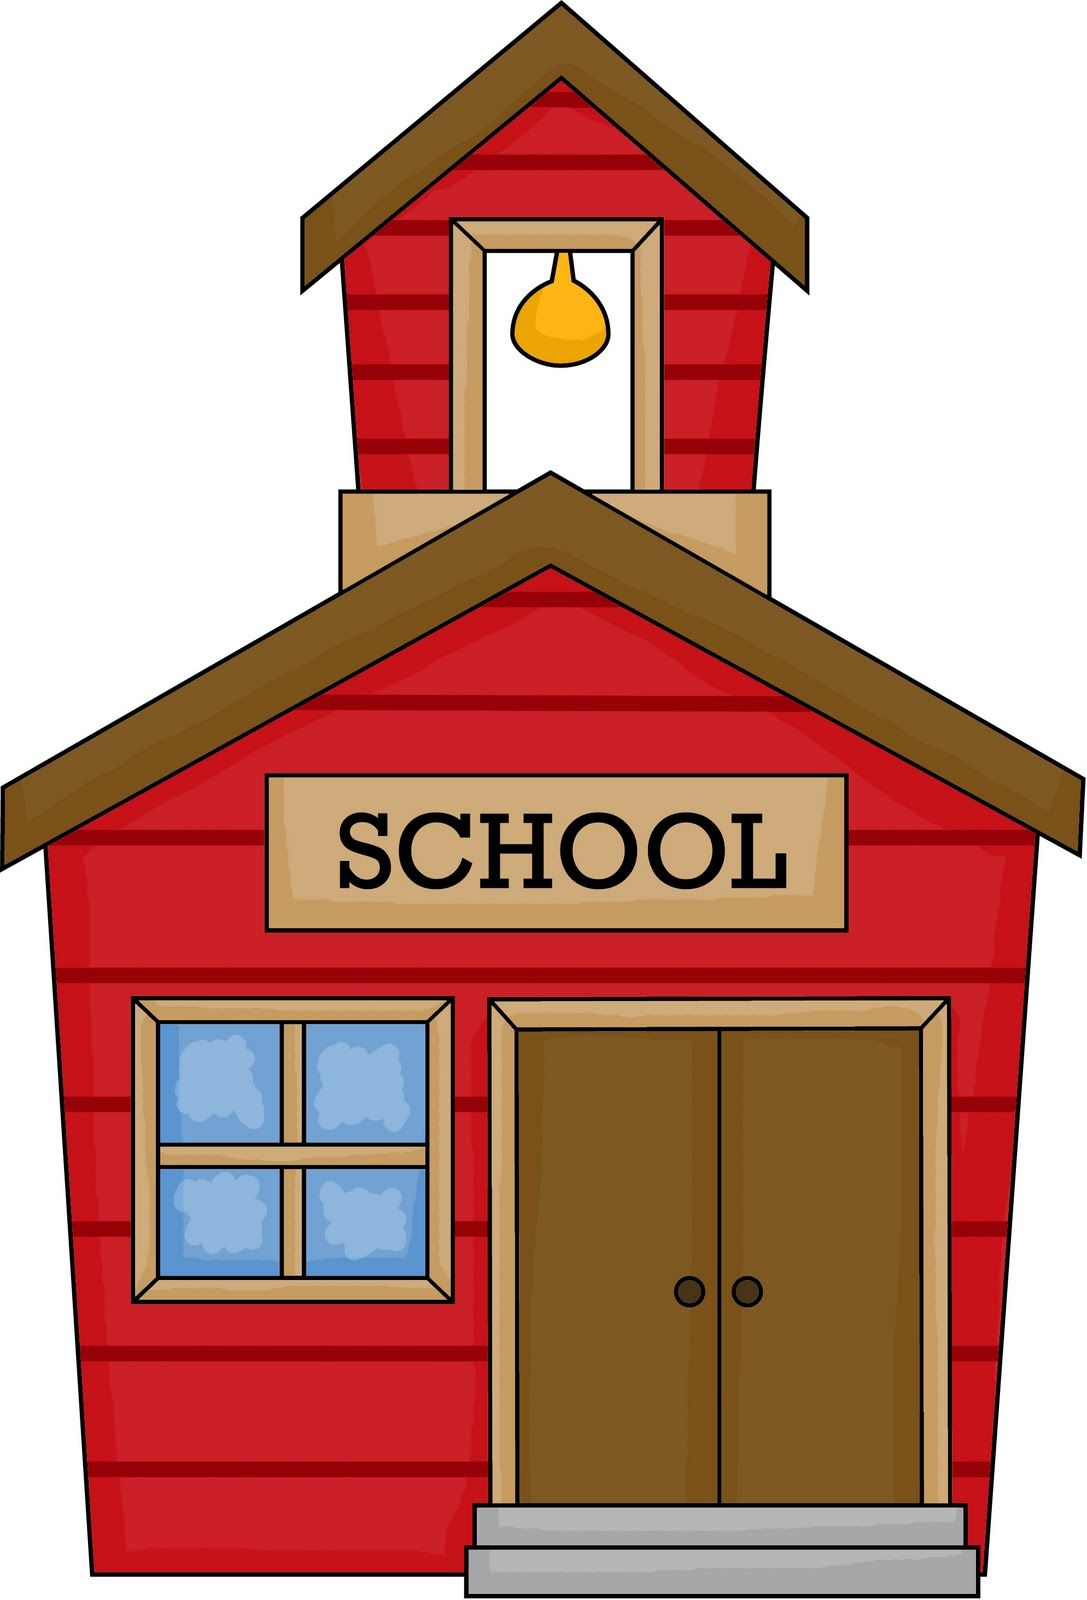 animated welcome back to school clipart clip art 6 teachers and rh pinterest com schoolhouse clipart black and white clipart schoolhouse